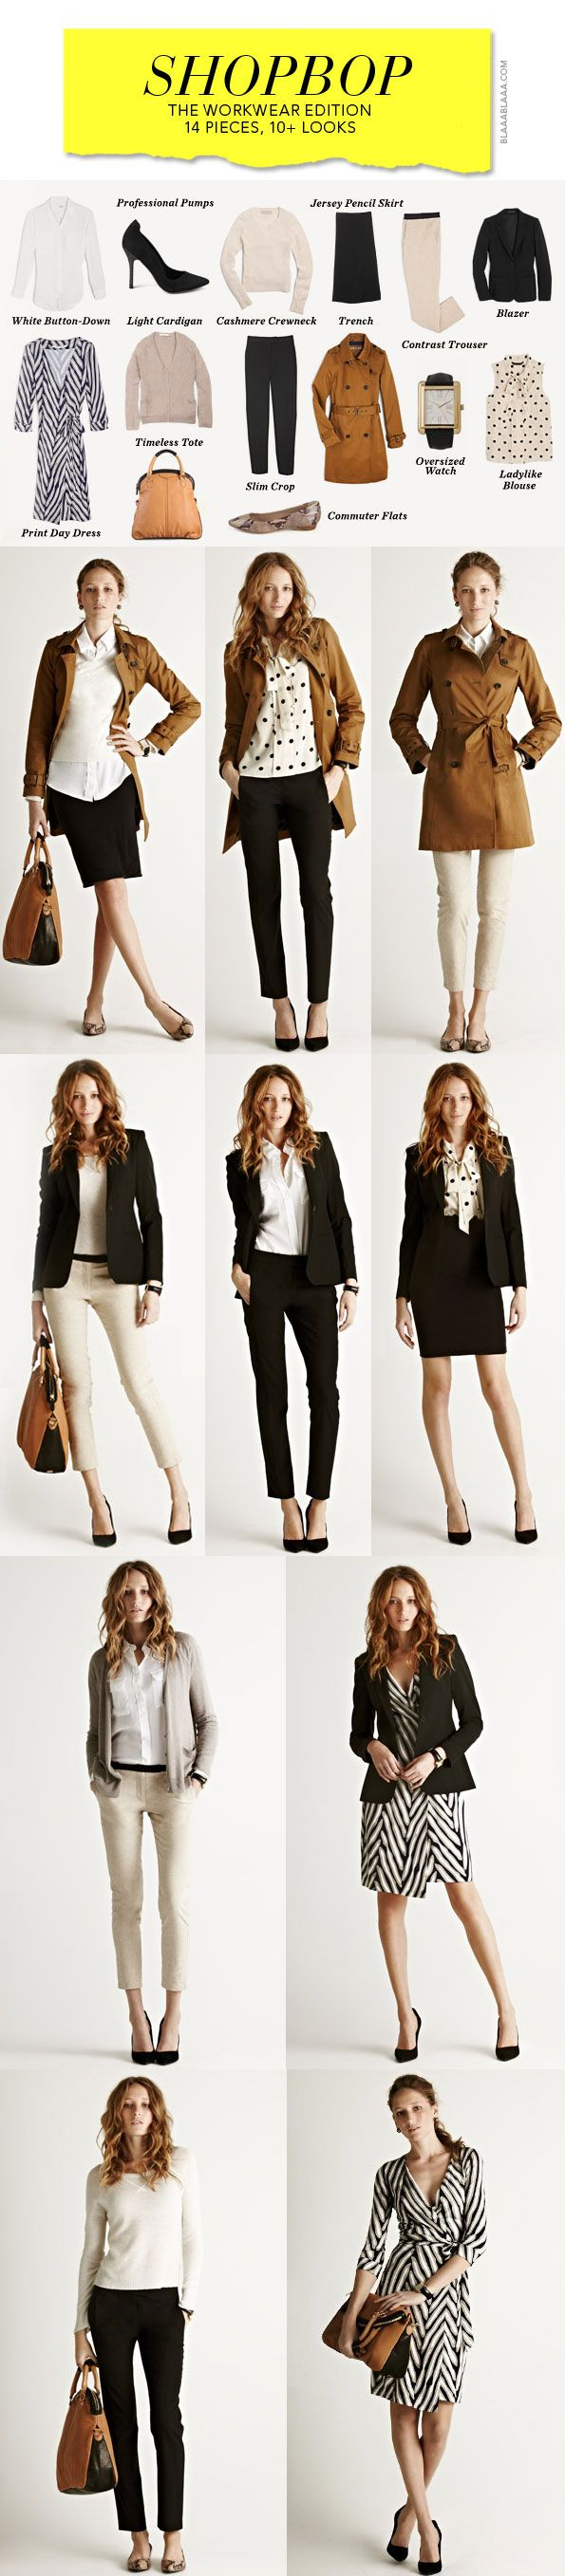 Work wardrobe inspiration. 14 pieces. 10 looks: Work Wardrobes, Work Clothing, Idea, 14 Pieces, Capsule Wardrobe, Work Wear, Workoutfit, Work Outfit, Workwear